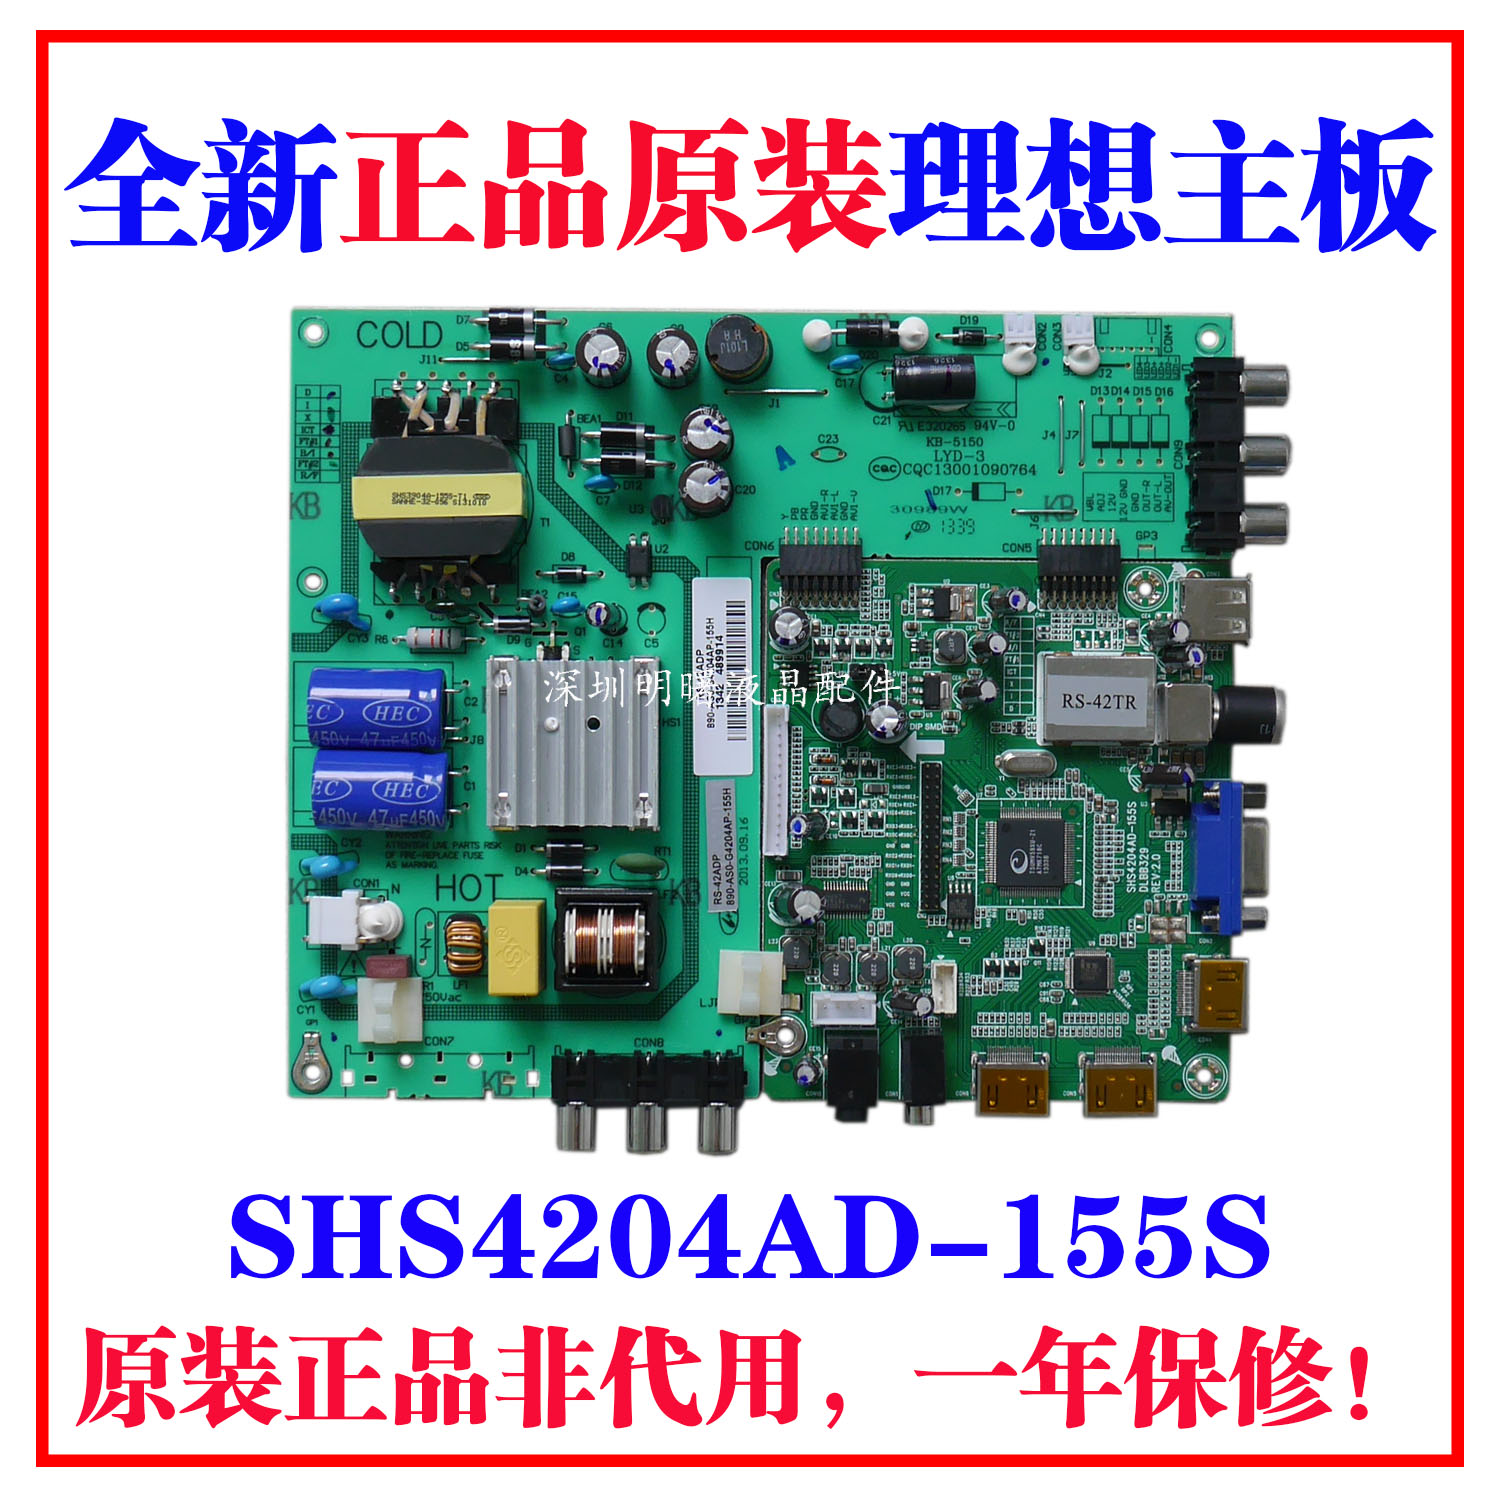 理想LED4260 SHS4204AD-155S RS-42ADP T420HVNO4电视电源主板